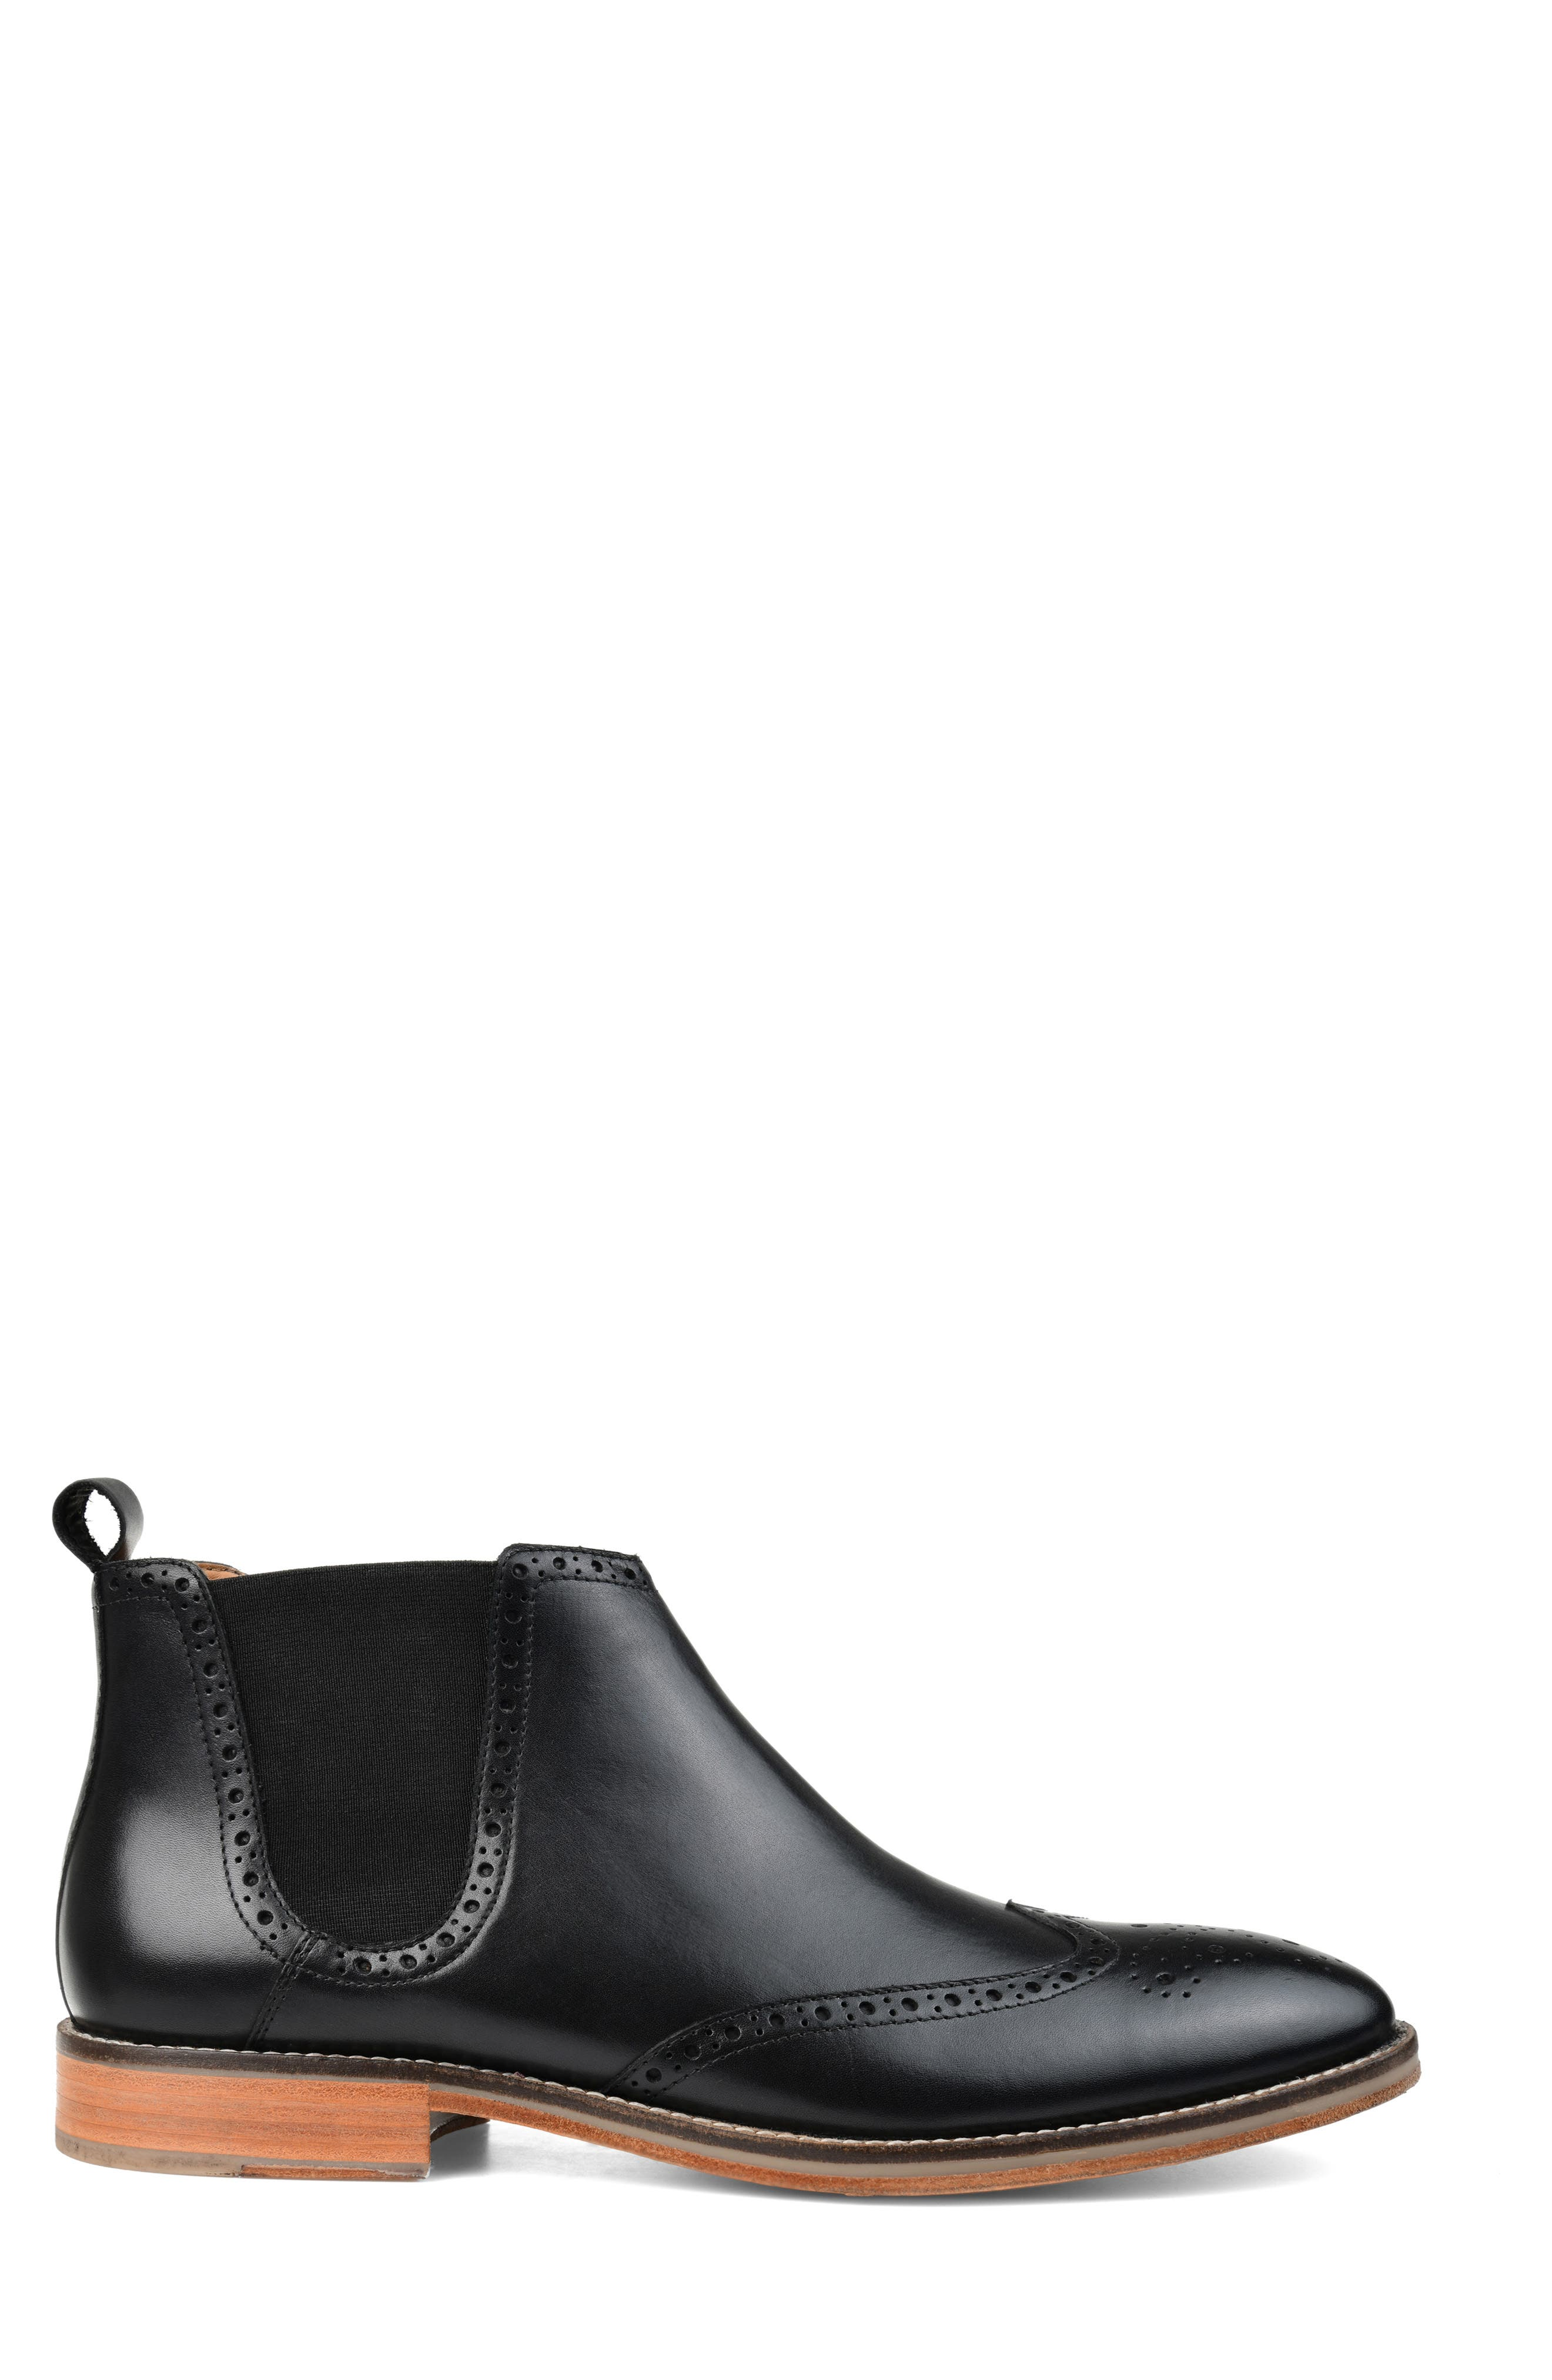 THOMAS AND VINE, Thorne Wingtip Chelsea Boot, Alternate thumbnail 3, color, BLACK LEATHER